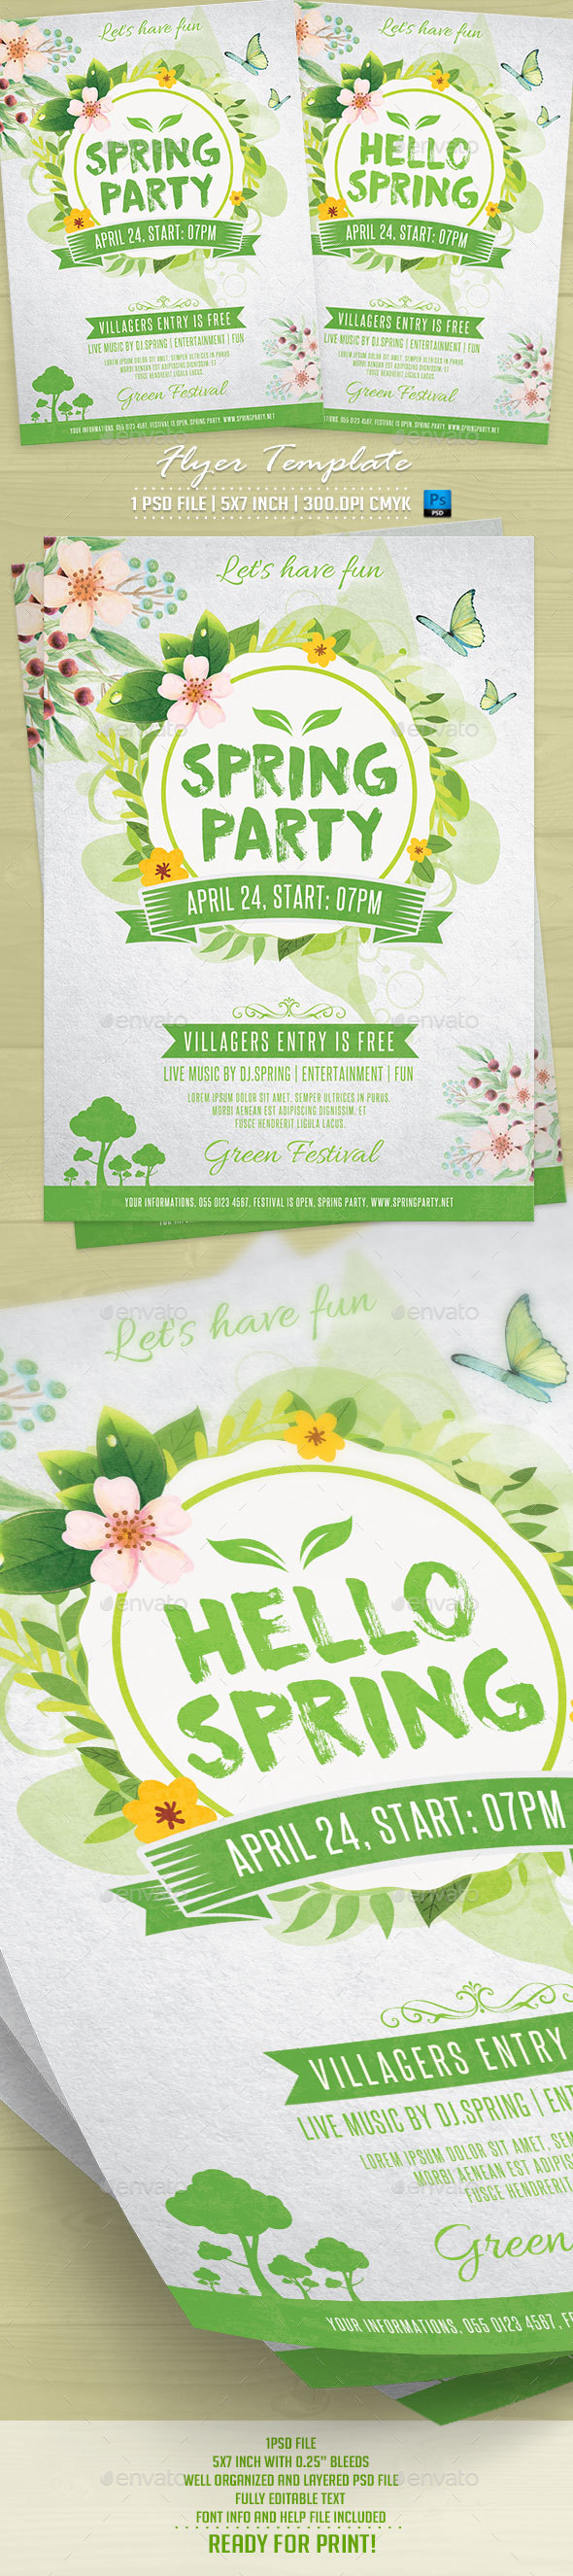 Spring Party Flyer Template v2 - Events Flyers